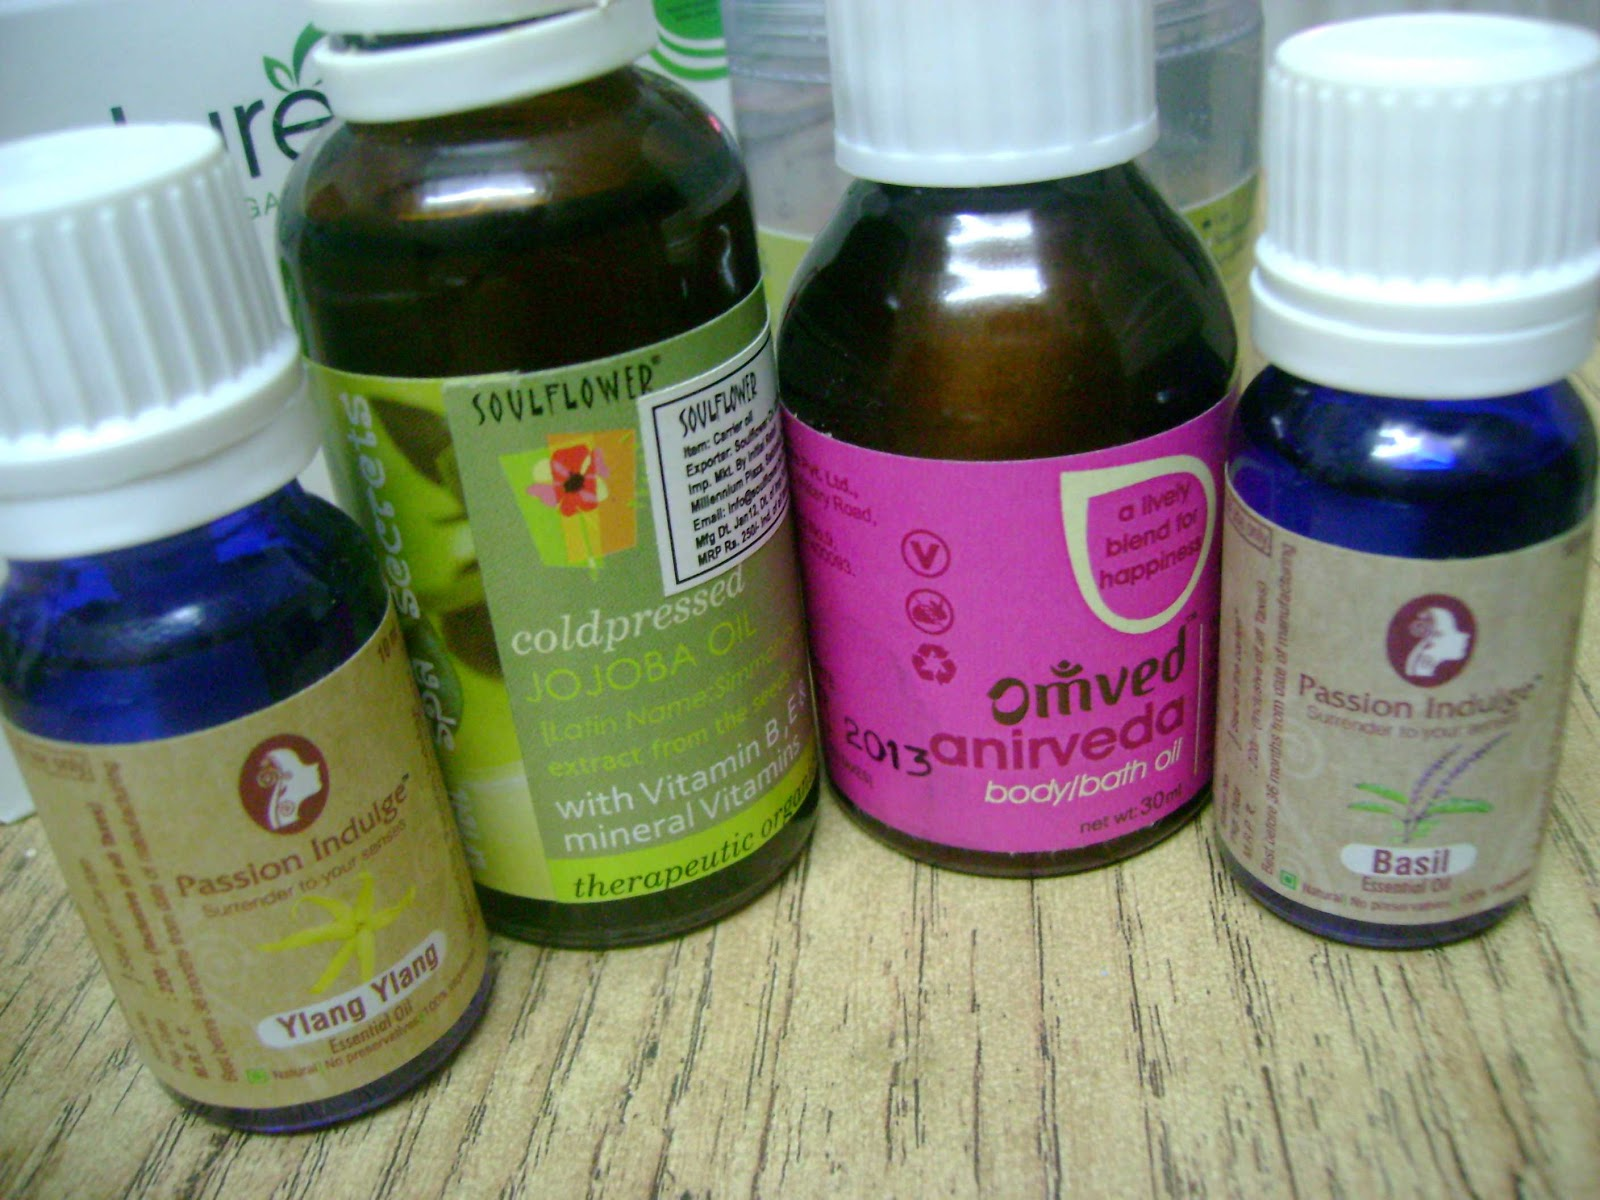 Haul from natural mantra - essential oils and body oils